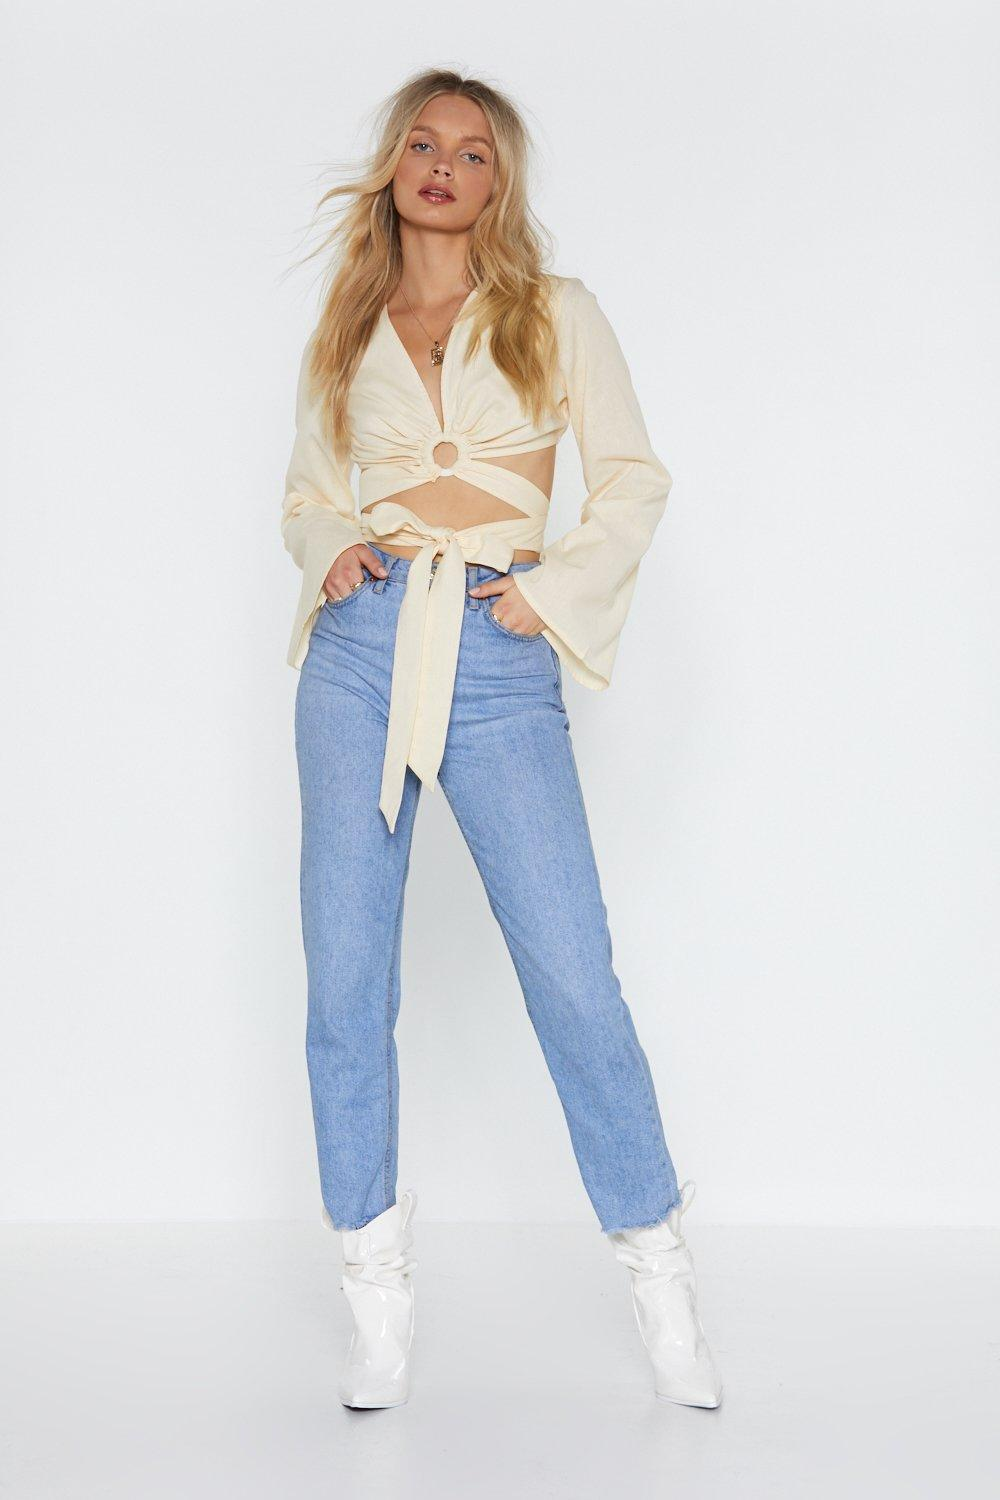 bc6dee03bc683b Hoop in Flare Sleeve Crop Top | Shop Clothes at Nasty Gal!